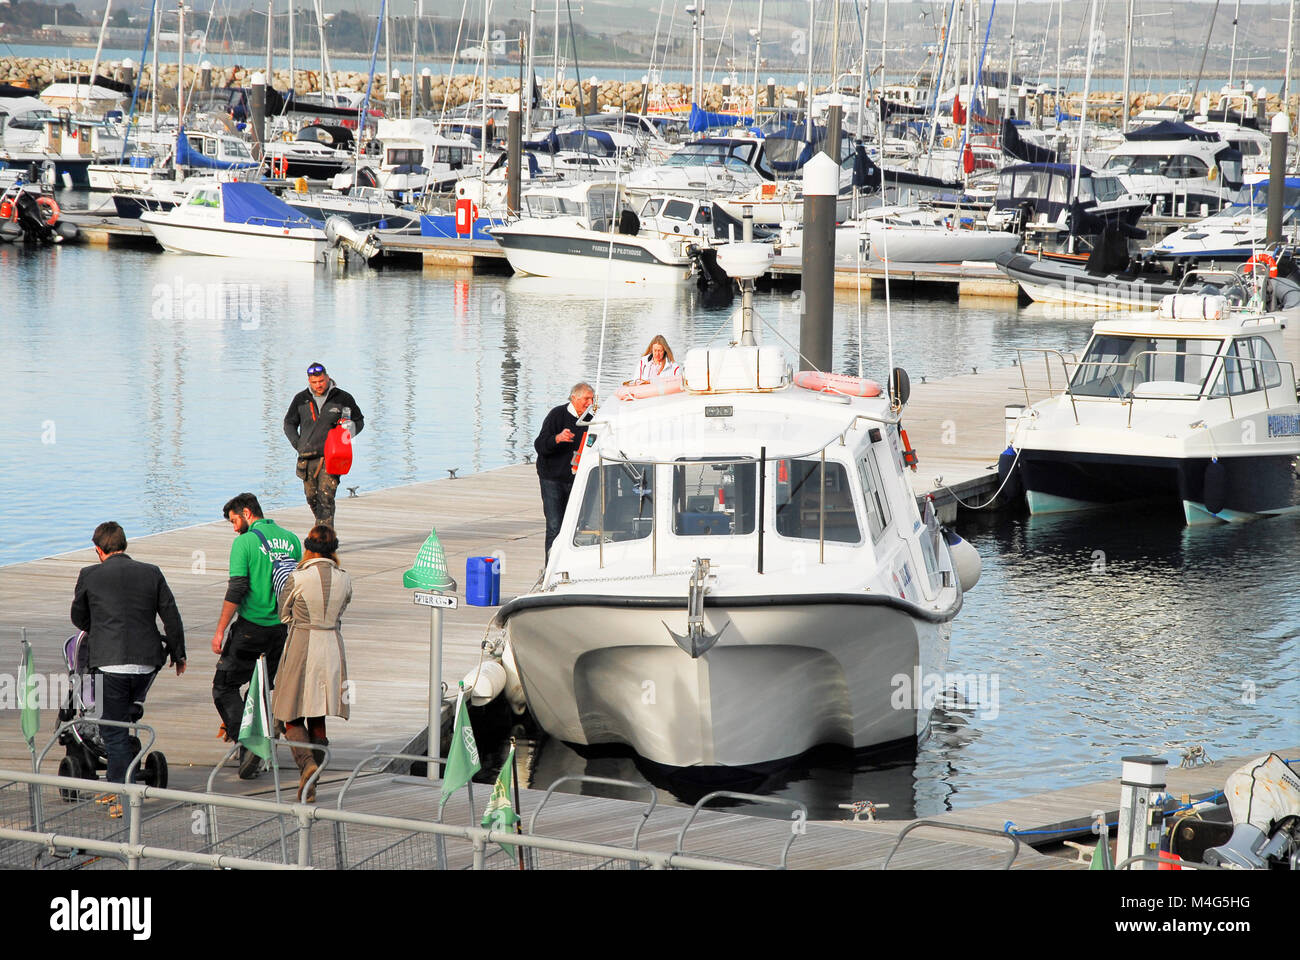 Portland, Dorset. 16th February 2018. People stroll to their boats on a sunny day in Portland Marina, with a high - Stock Image